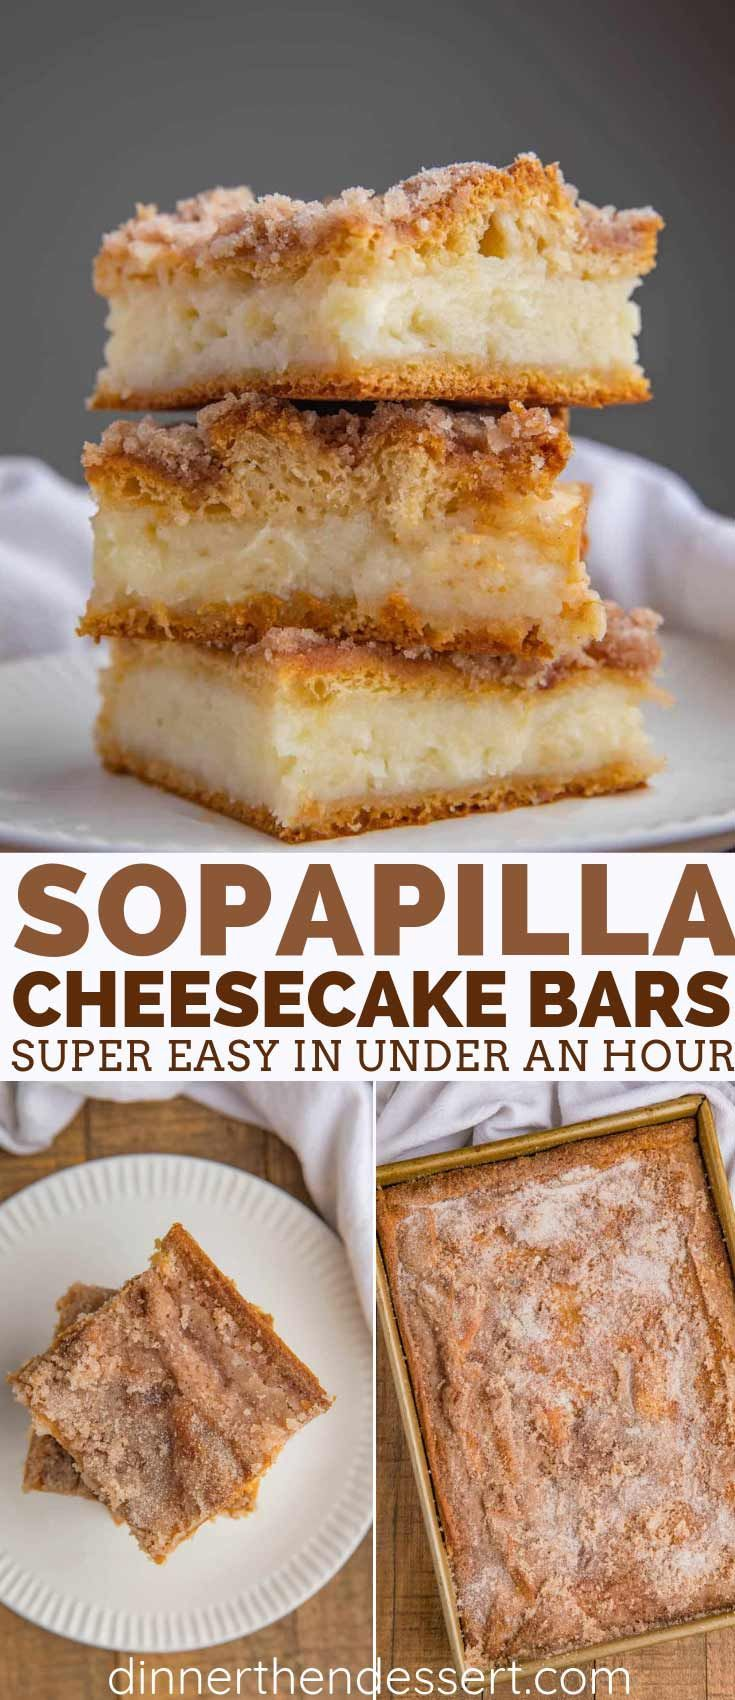 Sopapilla Cheesecake Bars are a quick and easy cheesecake dessert recipe with just six ingredients you can make in less than an hour that taste like a churro cheesecake! Cheesecake Bars are a quick and easy cheesecake dessert recipe with just six ingredients you can make in less than an hour that taste like a churro cheesecake!